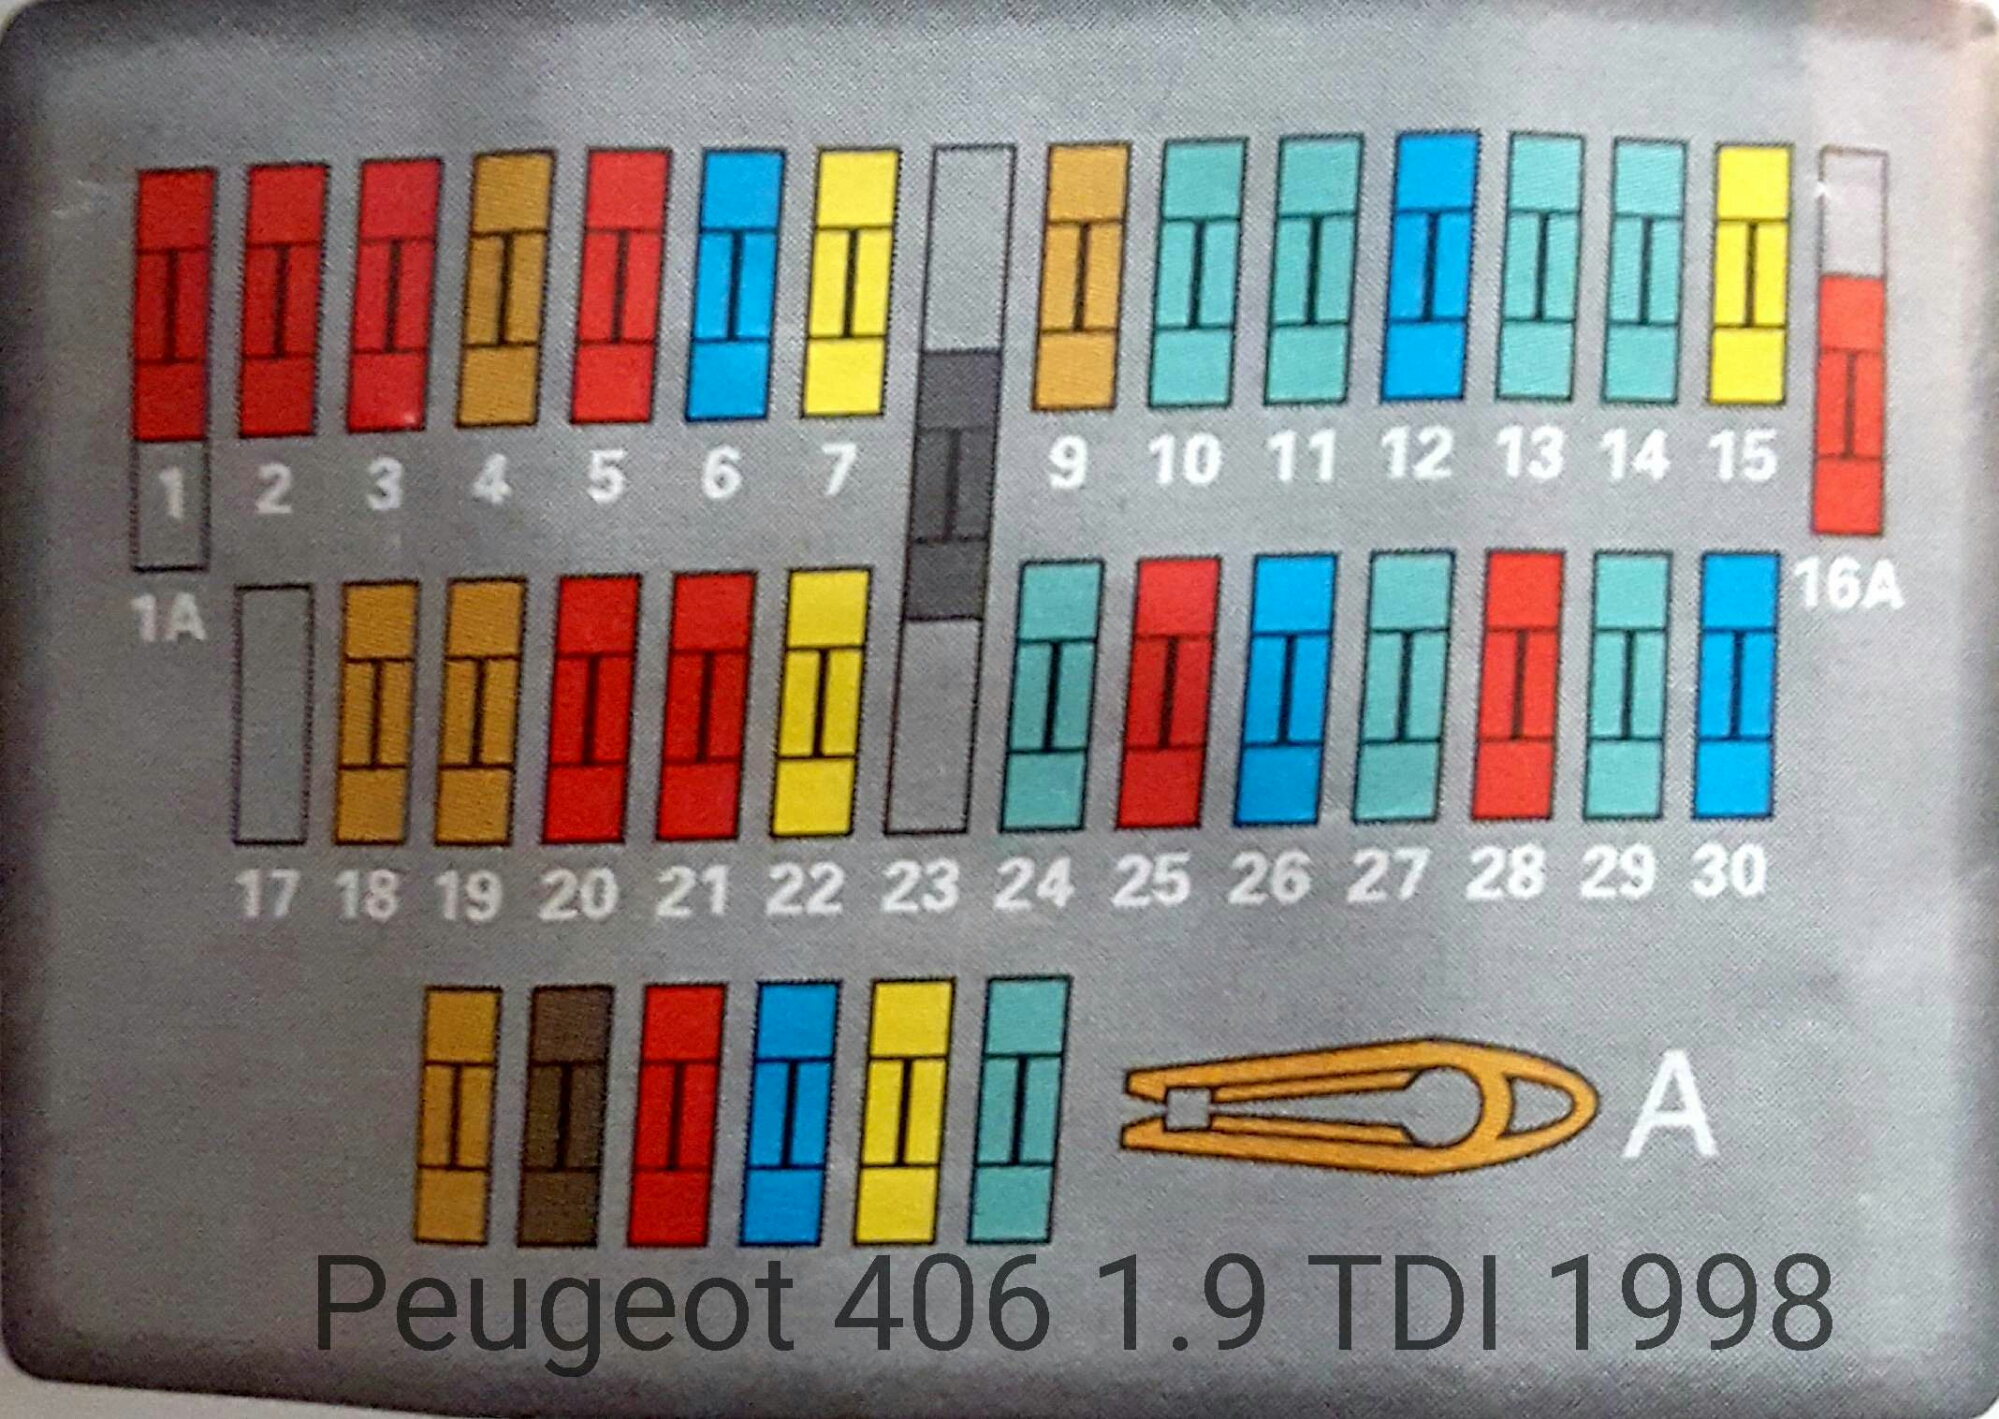 small resolution of cartips peugeot 406 hand book peugeot 406 hand book tutorial rh 406cartips wordpress com peugeot 406 peugeot 406 fuse box